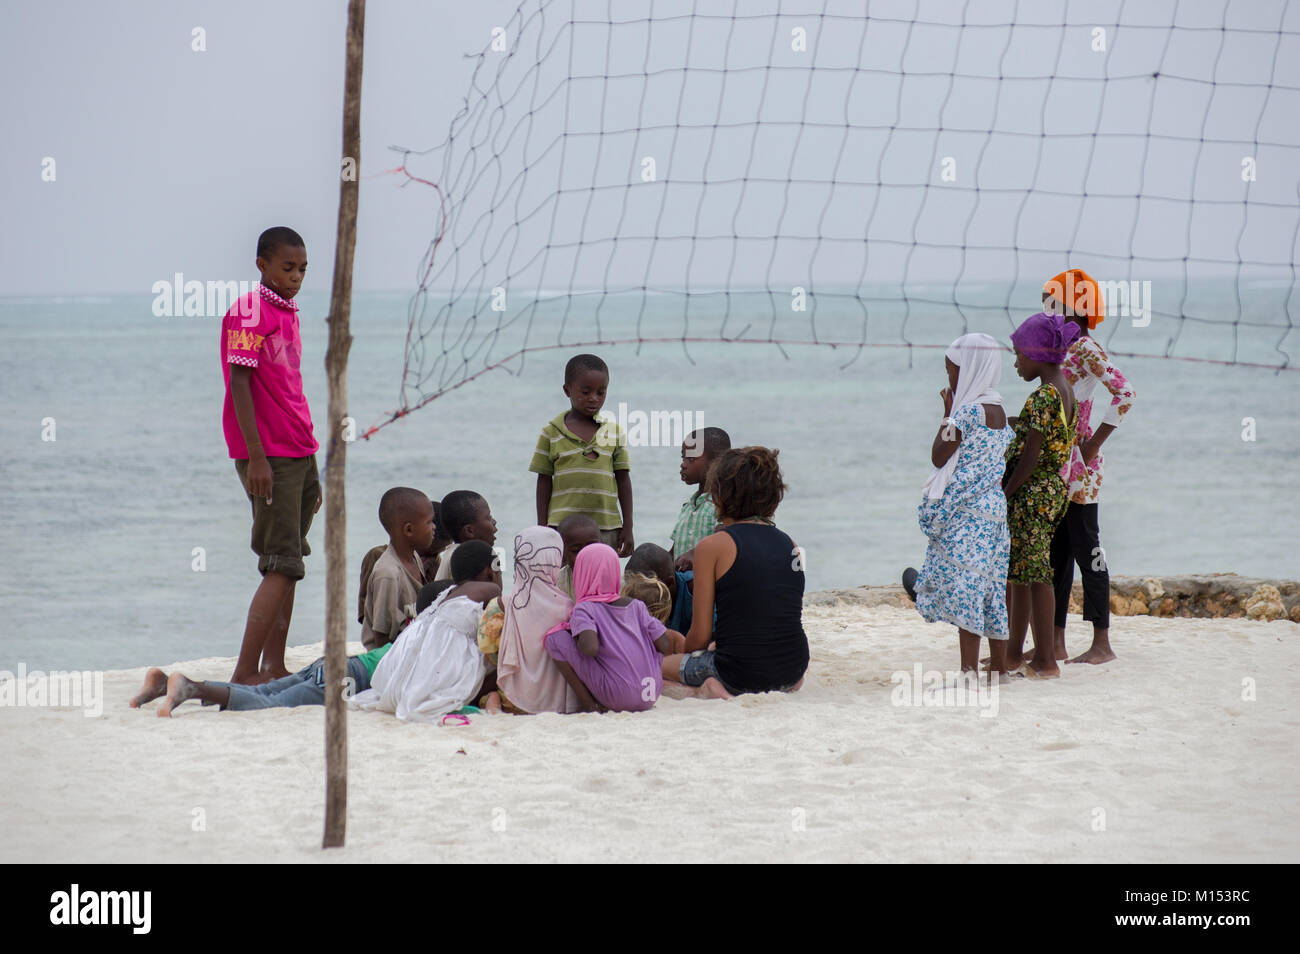 Local children in Zanzibar having a discussion on the white sandy beach in Nungwi, barefoot and wearing colourful - Stock Image